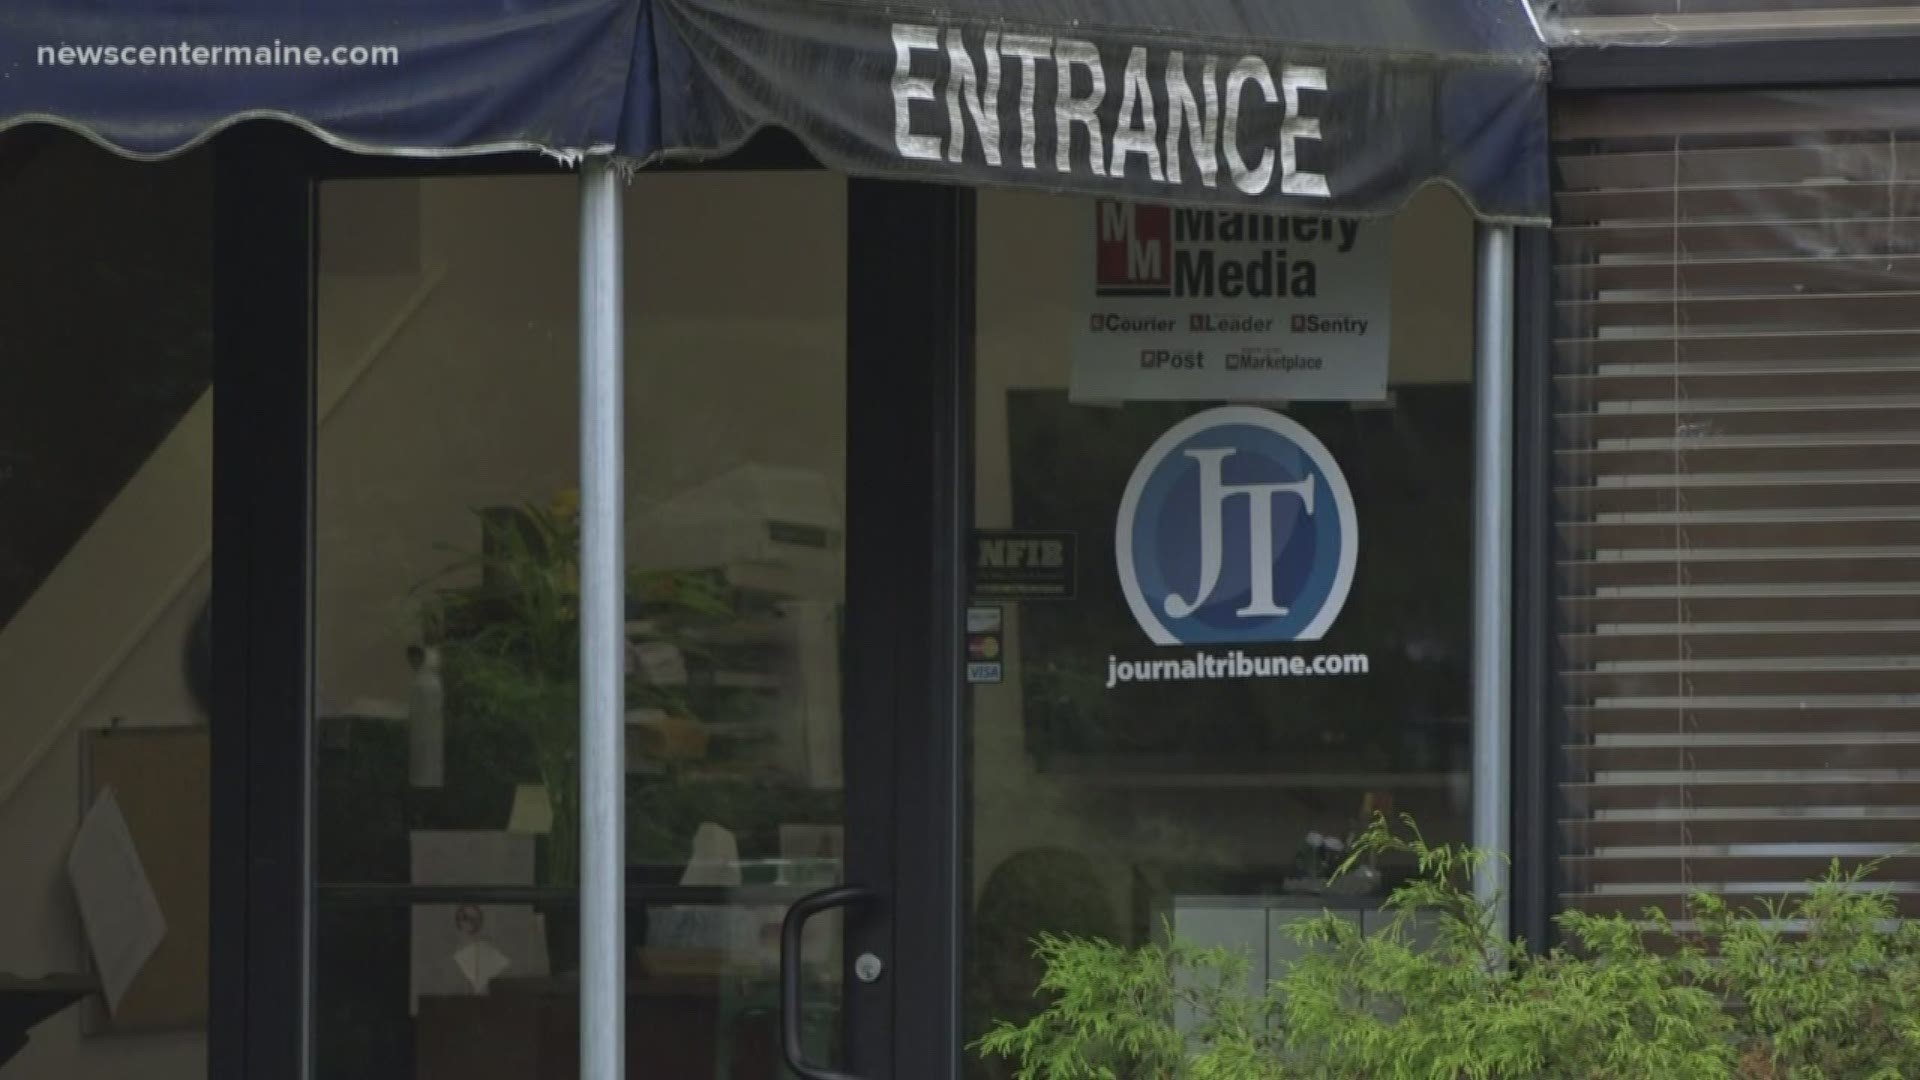 Journal Tribune In Biddeford Closing Newscentermaine Com